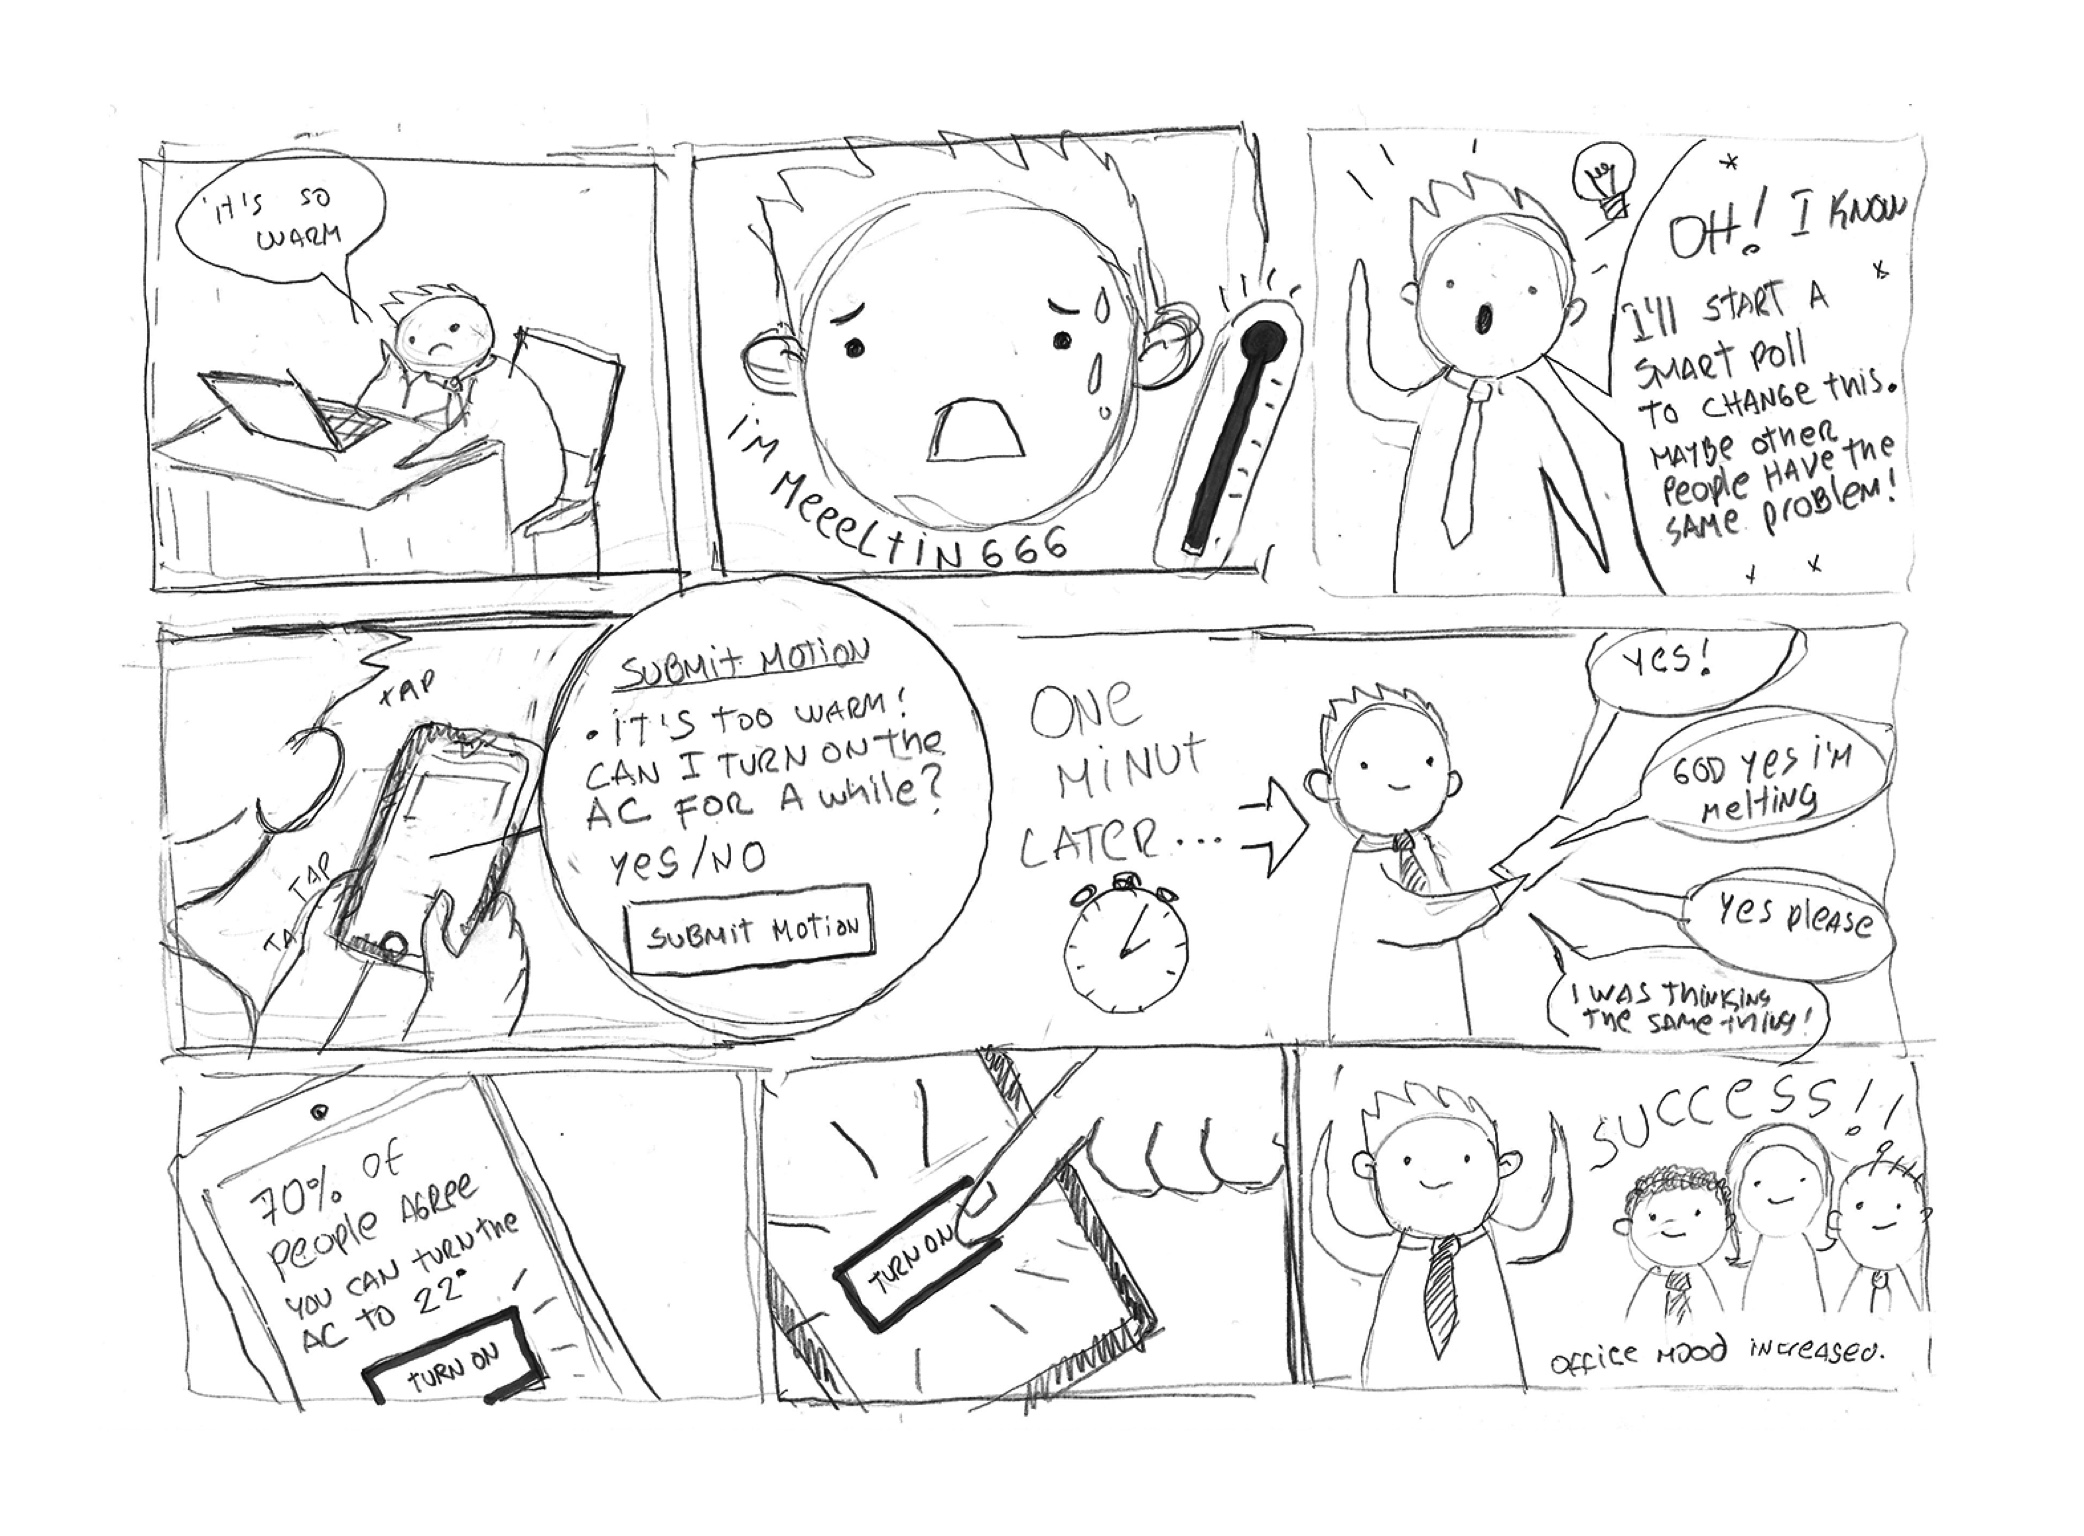 One of the storyboards made by me